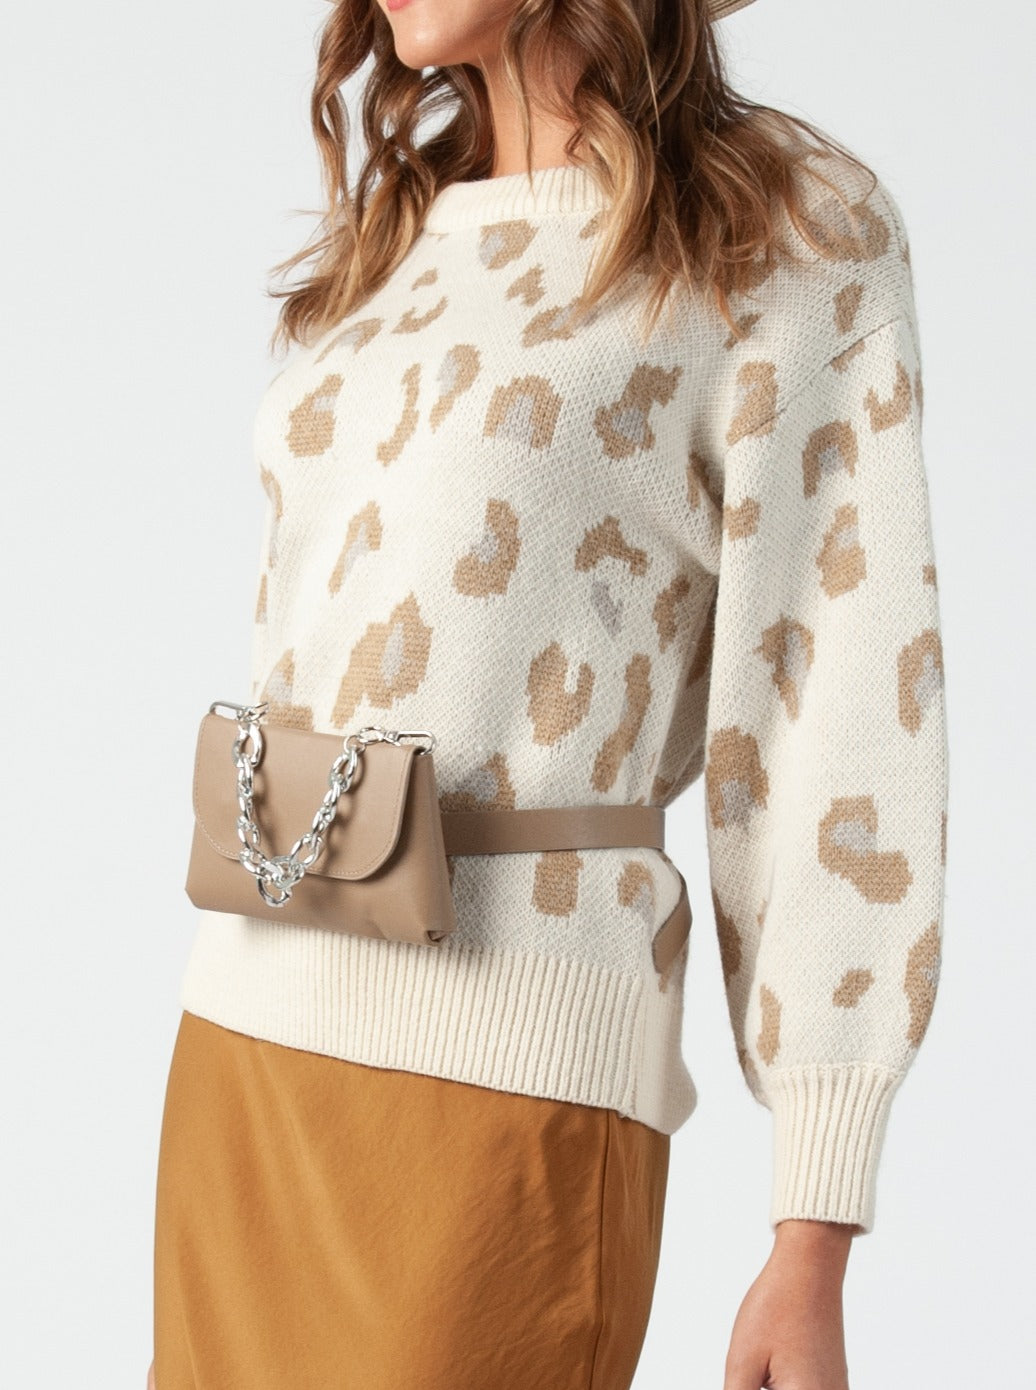 Samara Taupe Belt and Multi Way BaG